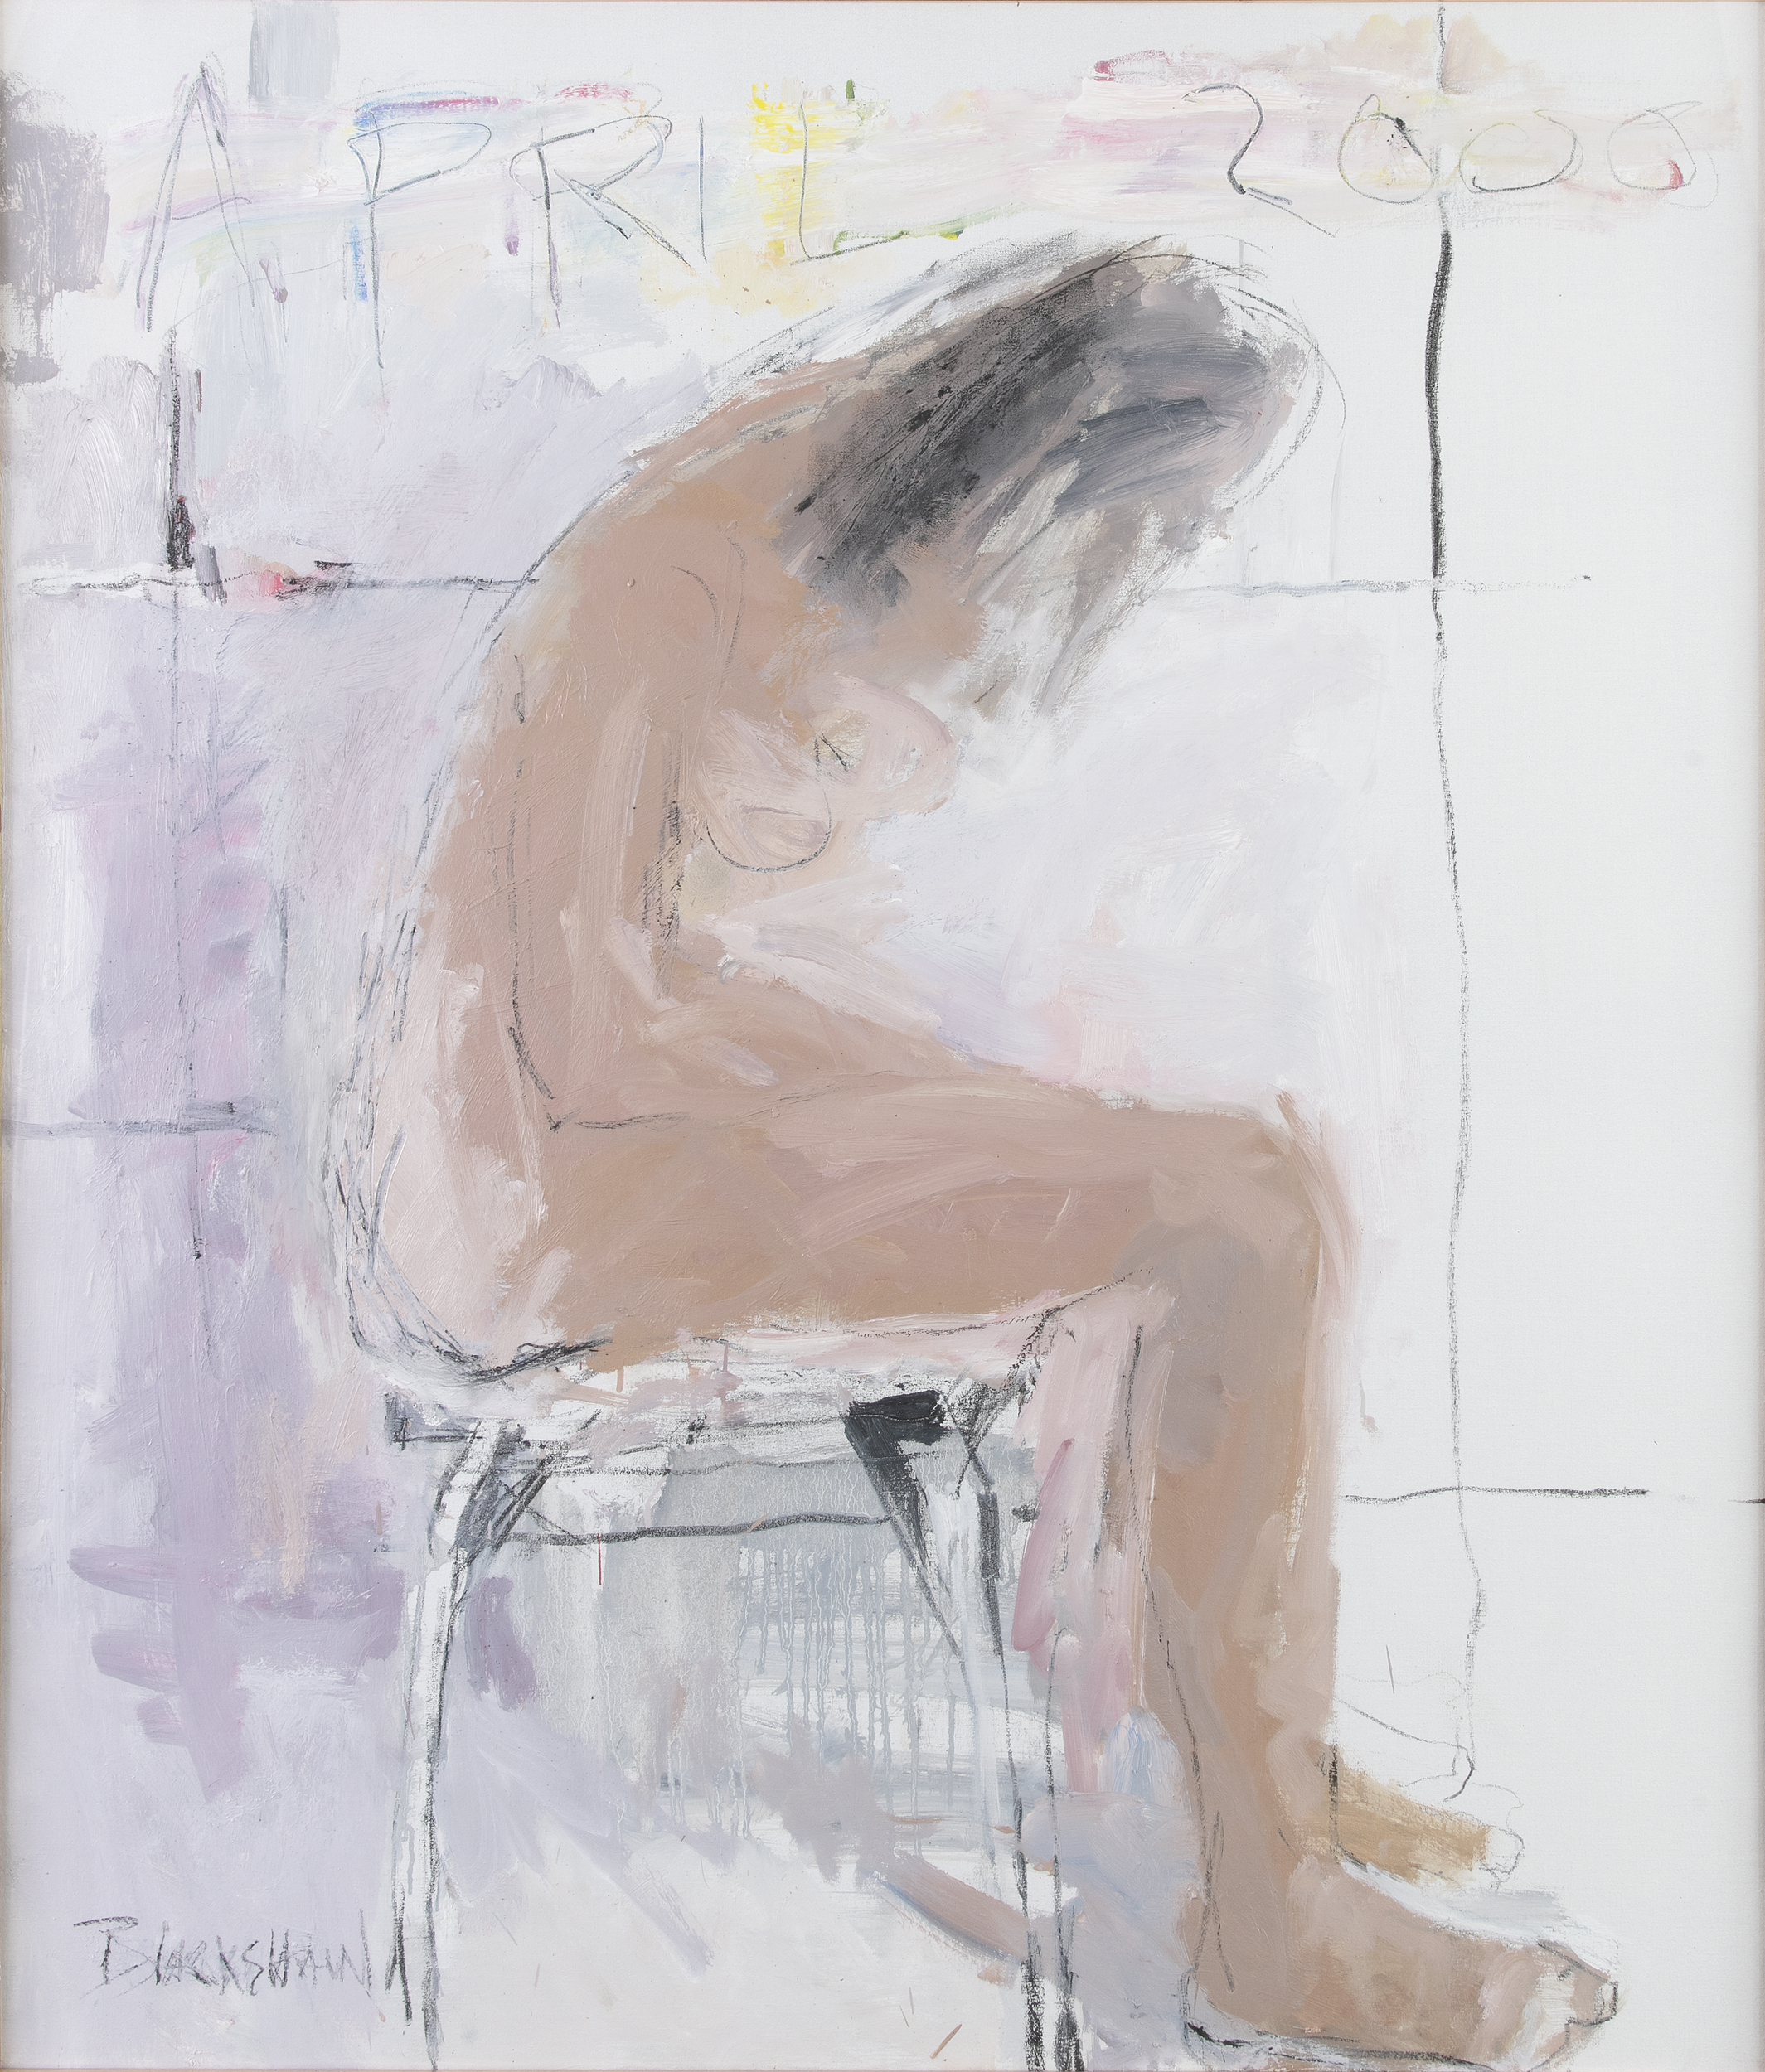 Basil Blackshaw HRHA RUA (1932-2016)Seated Figure (Jude)Oil on canvas, 99 x 84cm (39 x 33)Signed and